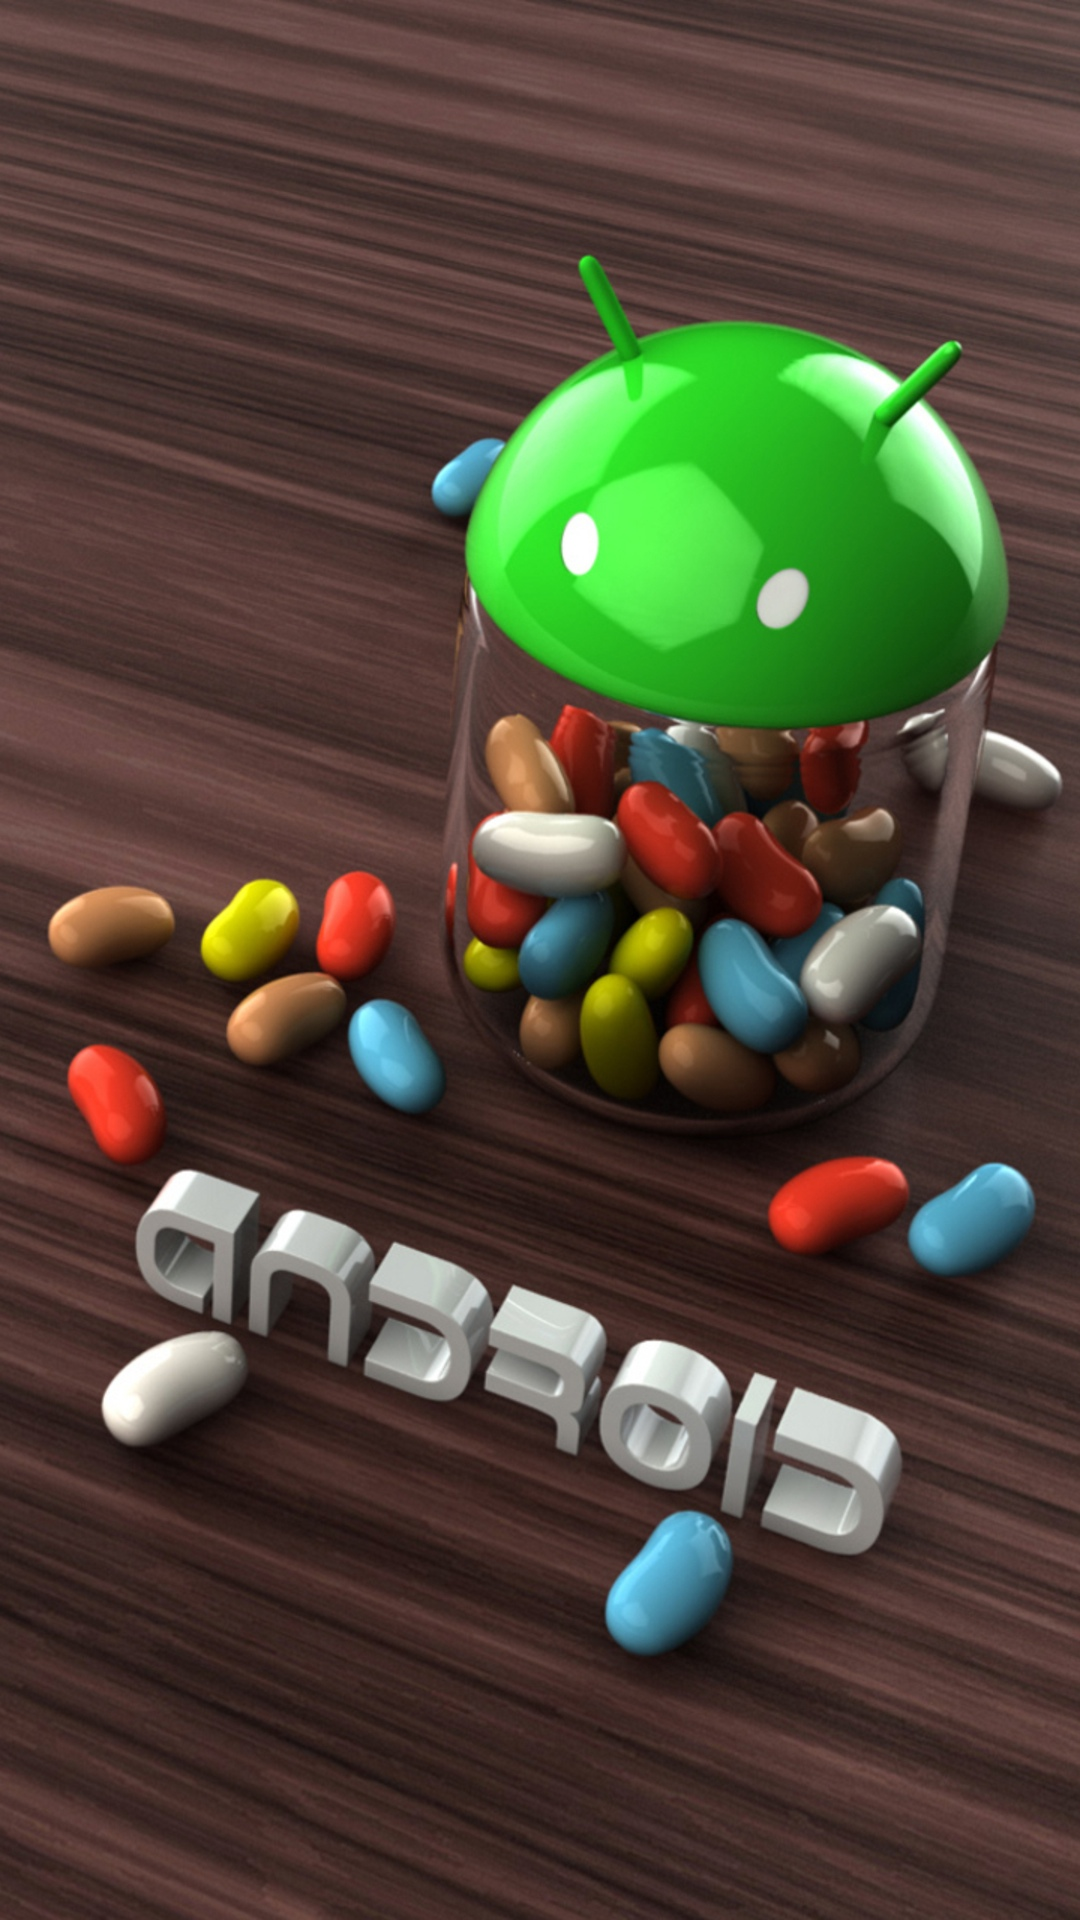 Android Candy Smartphone Wallpapers HD